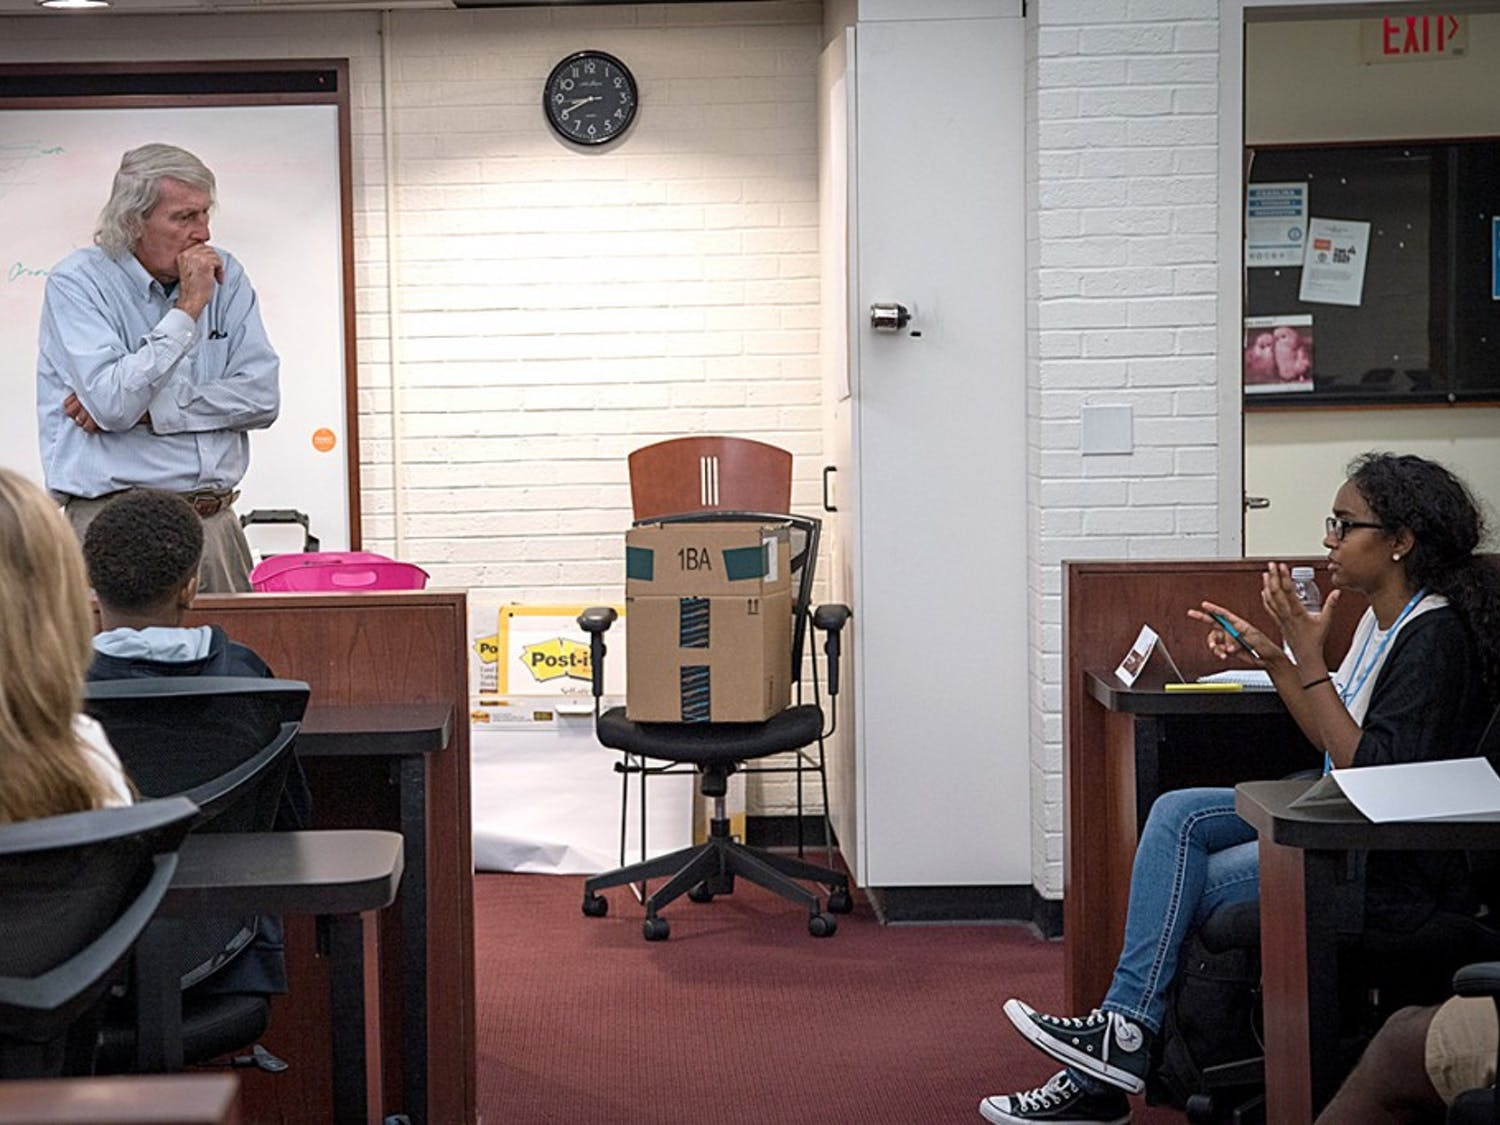 Professor Mike Yopp answers a student's question during the Chuck Stone Program for Diversity in Education and Media, summer 2016. Photo courtesy of the Chuck Stone Program.